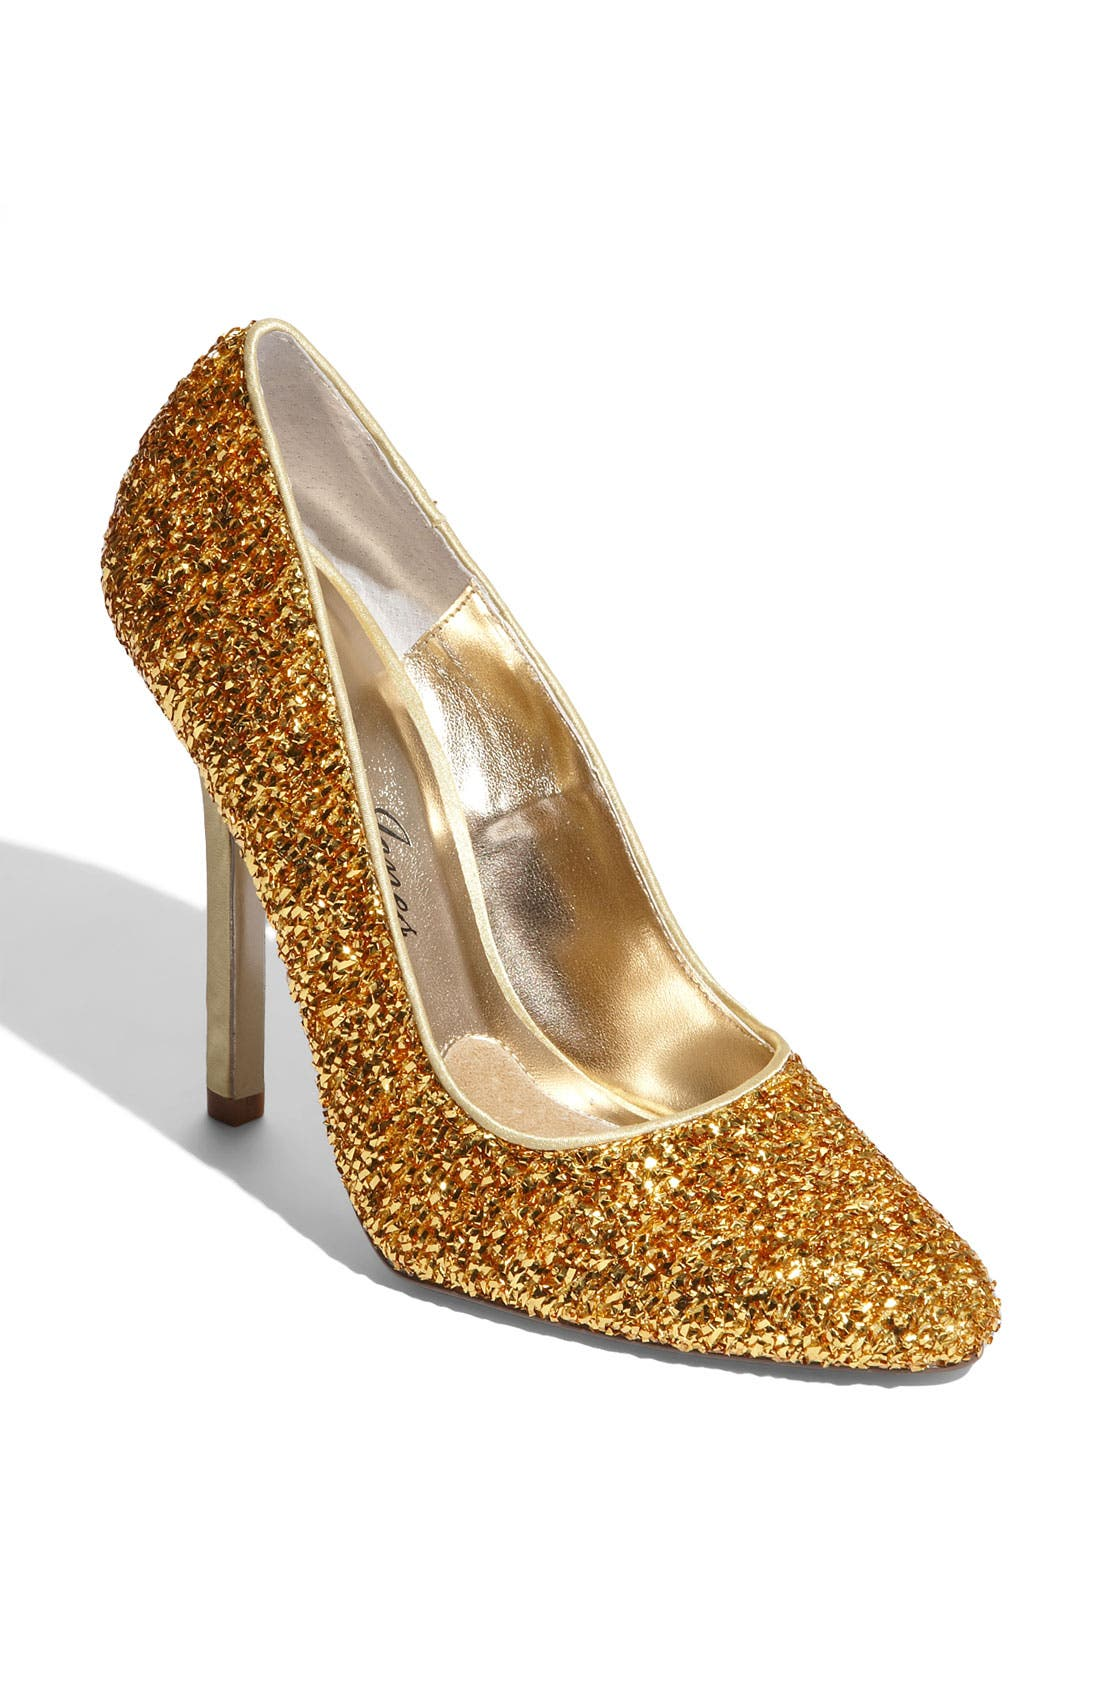 Main Image - Lauren Jones 'Zinger' Pump